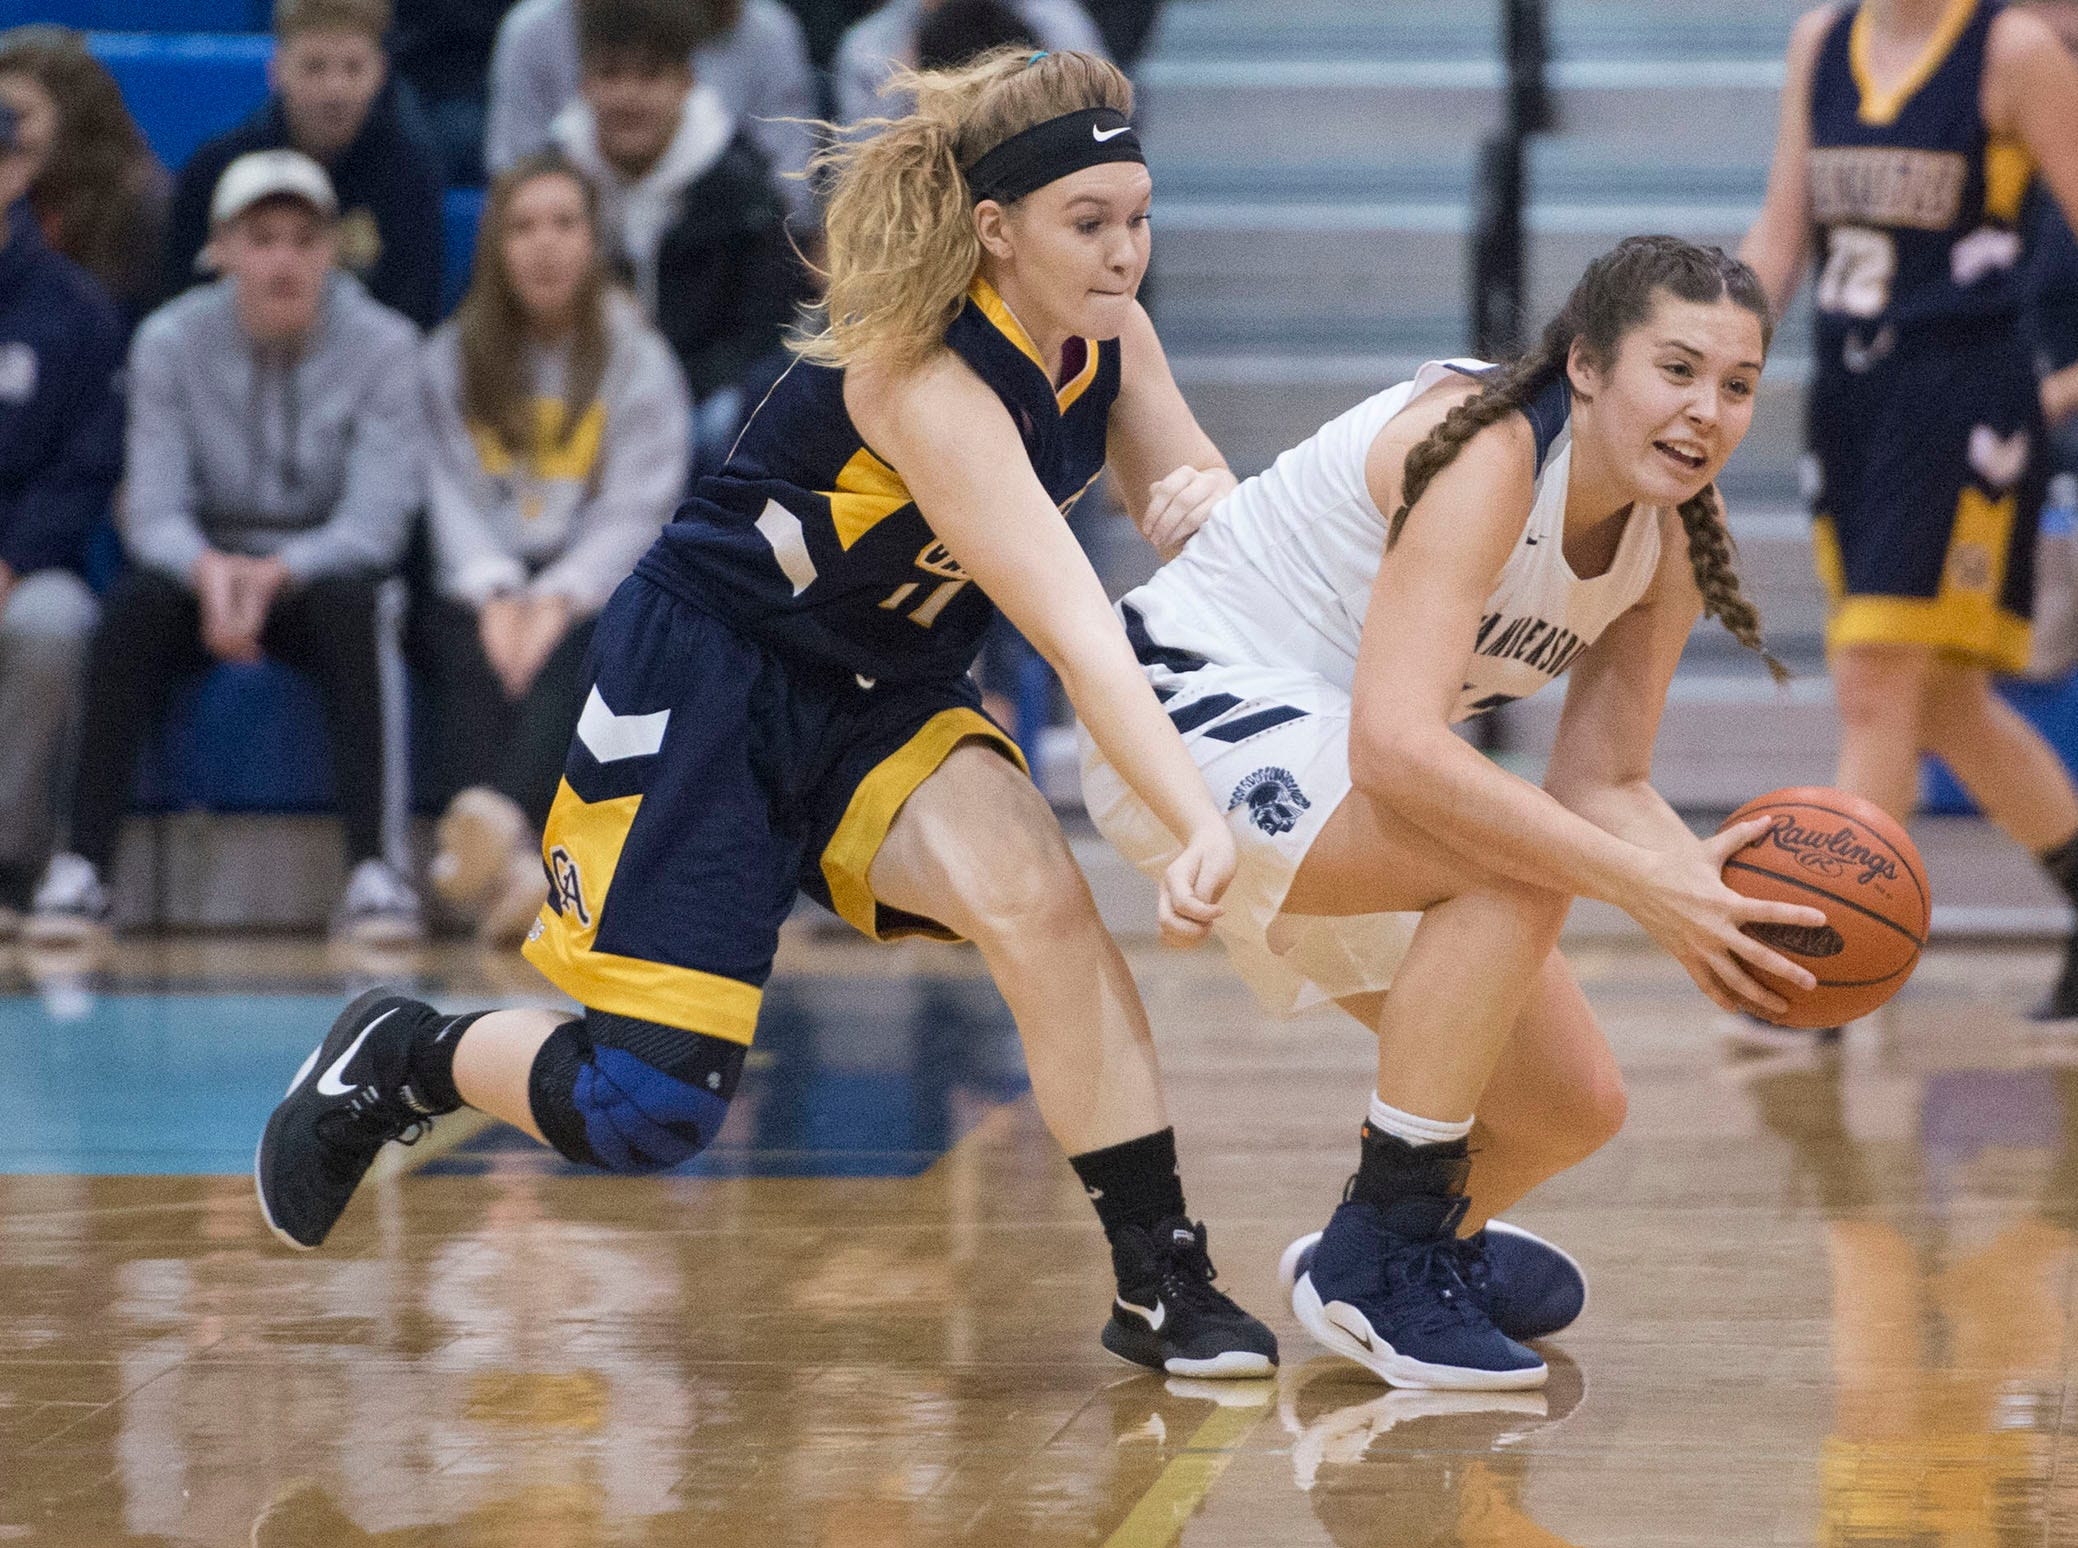 Chambersburg played Greencastle during the finals at Franklin County Tip-Off Tournament, Saturday, Dec. 8, 2018.